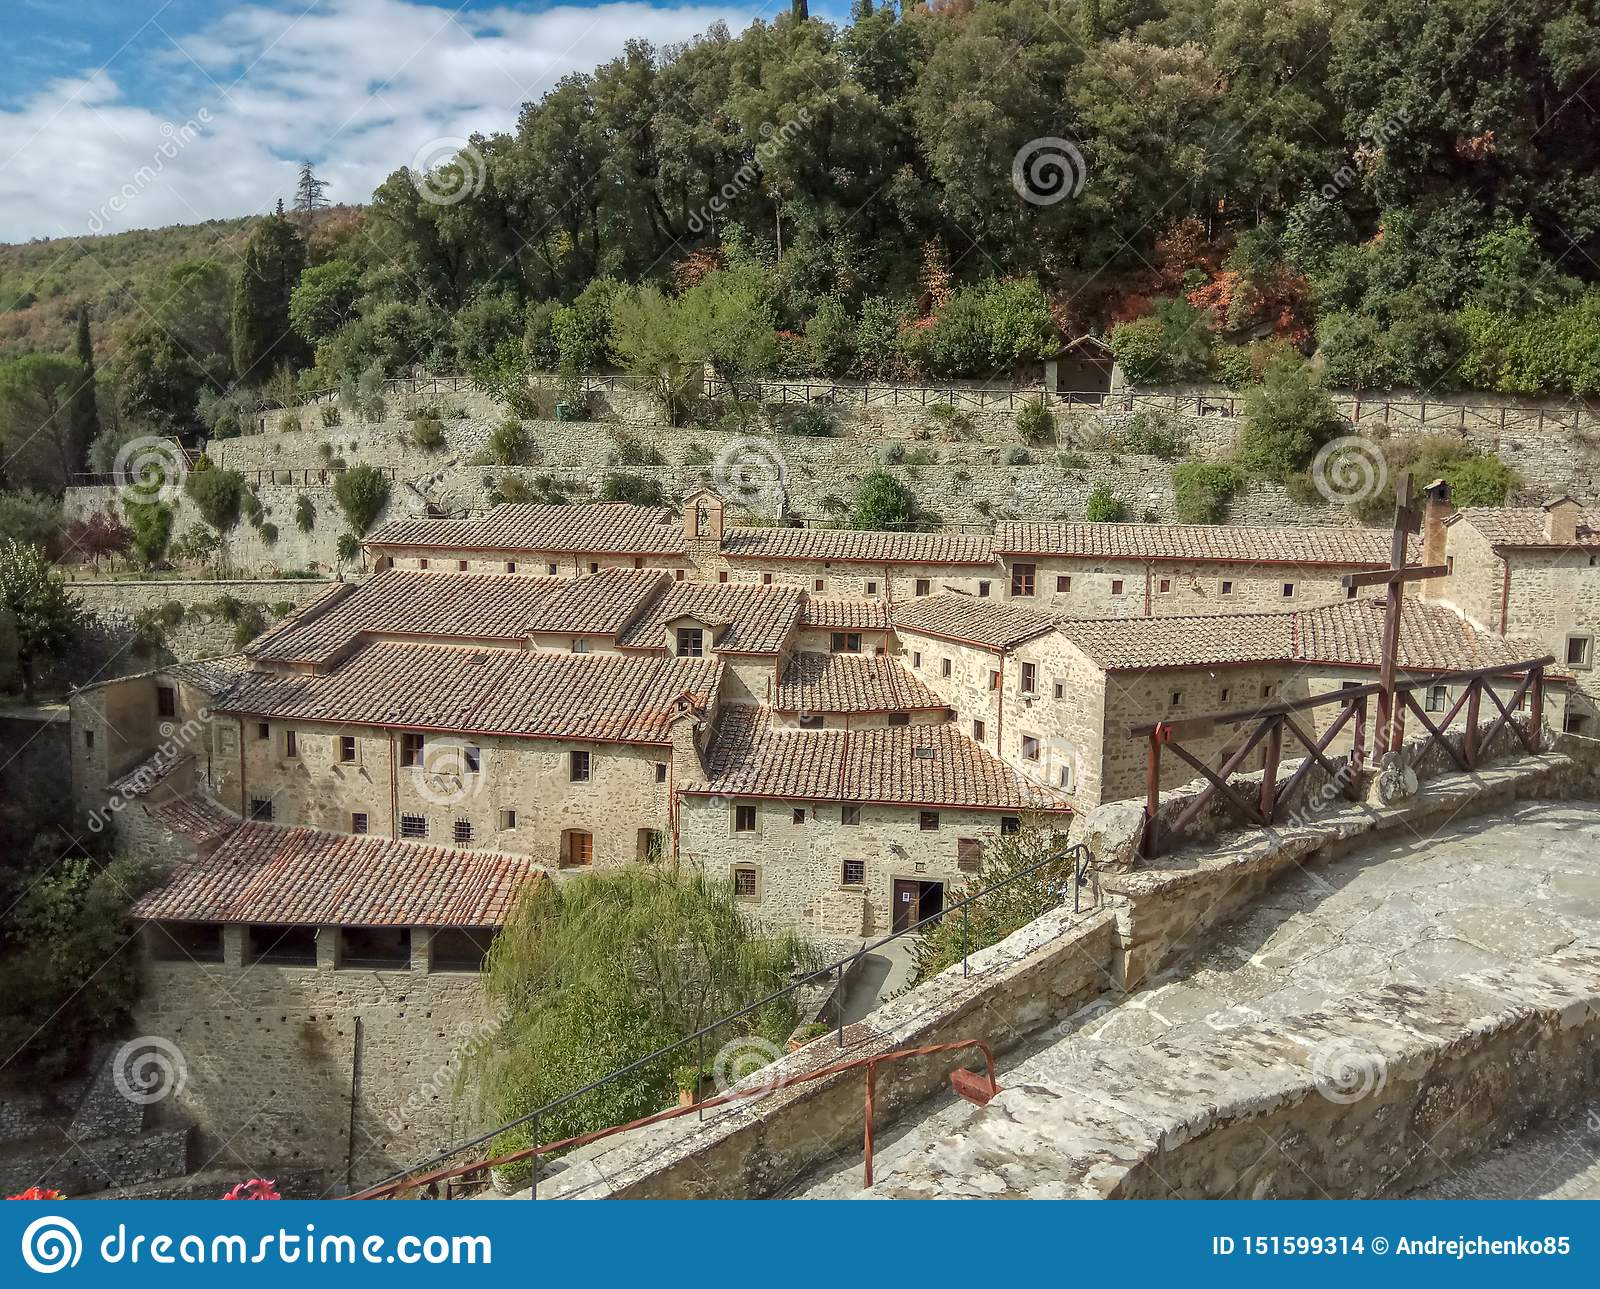 The beautiful areal landscape of a small rural village on the hill, Tuscany, Italy.